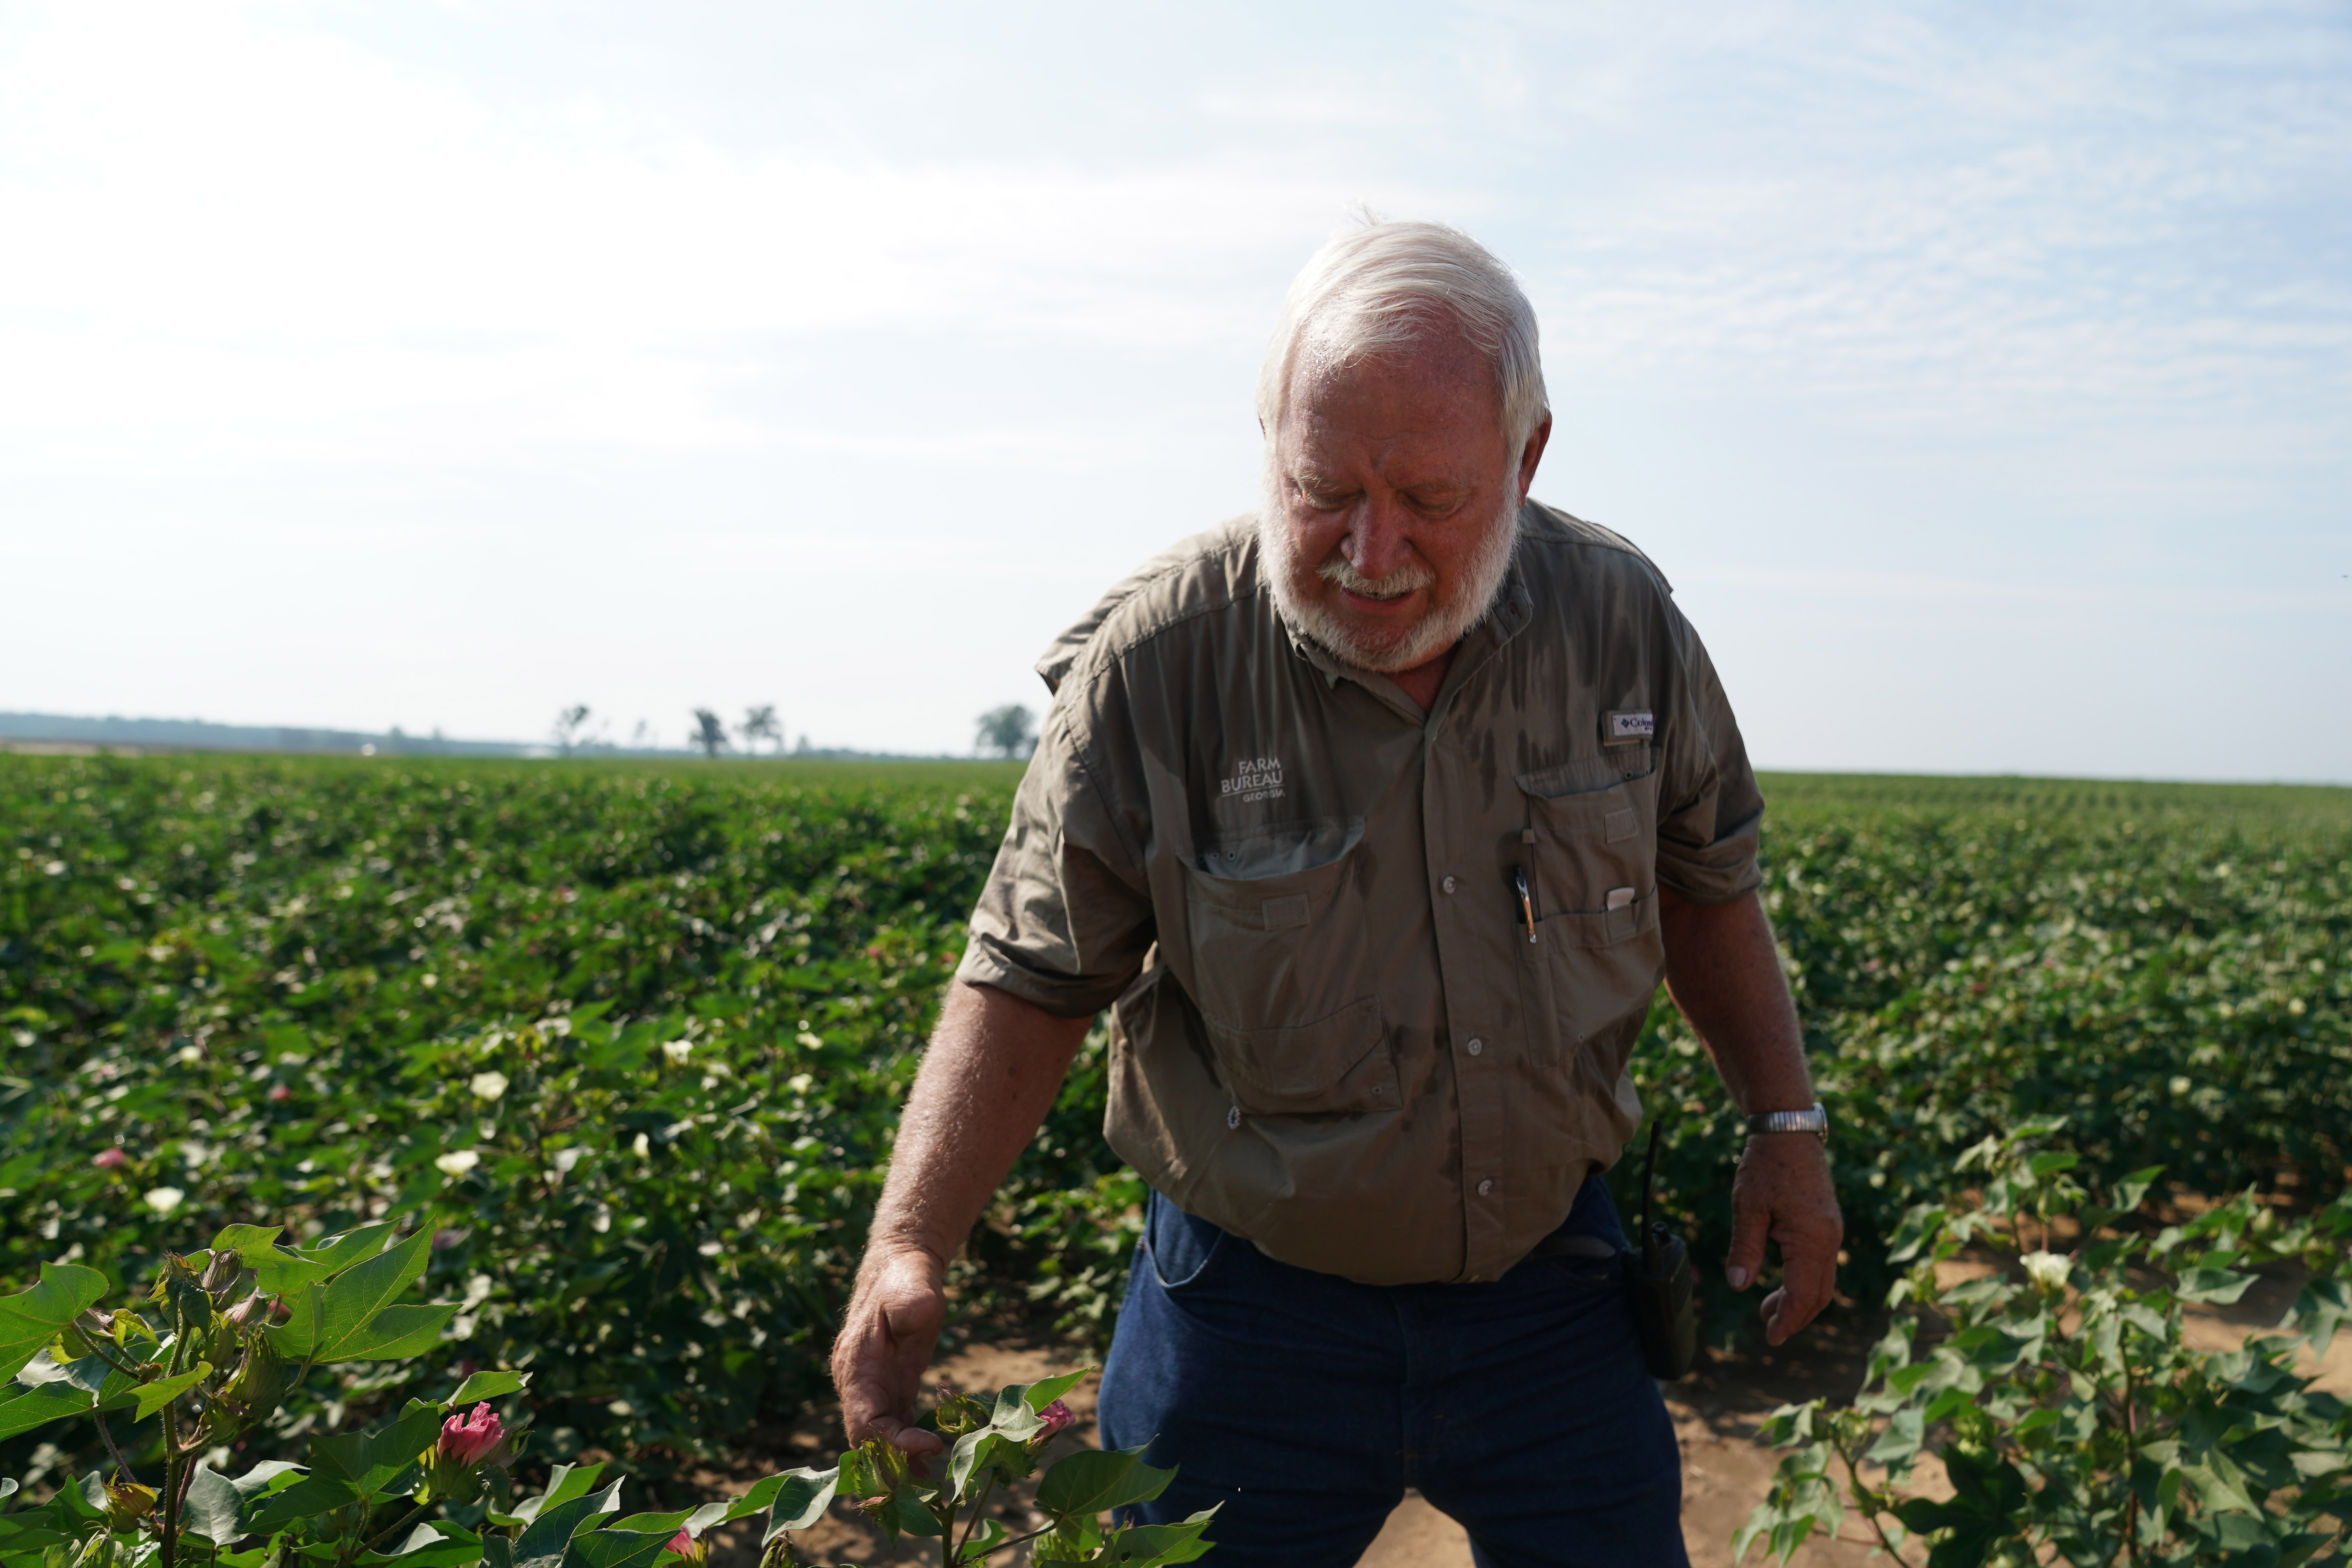 Struggling to profit from cotton, US farmer counts on trade deal with China